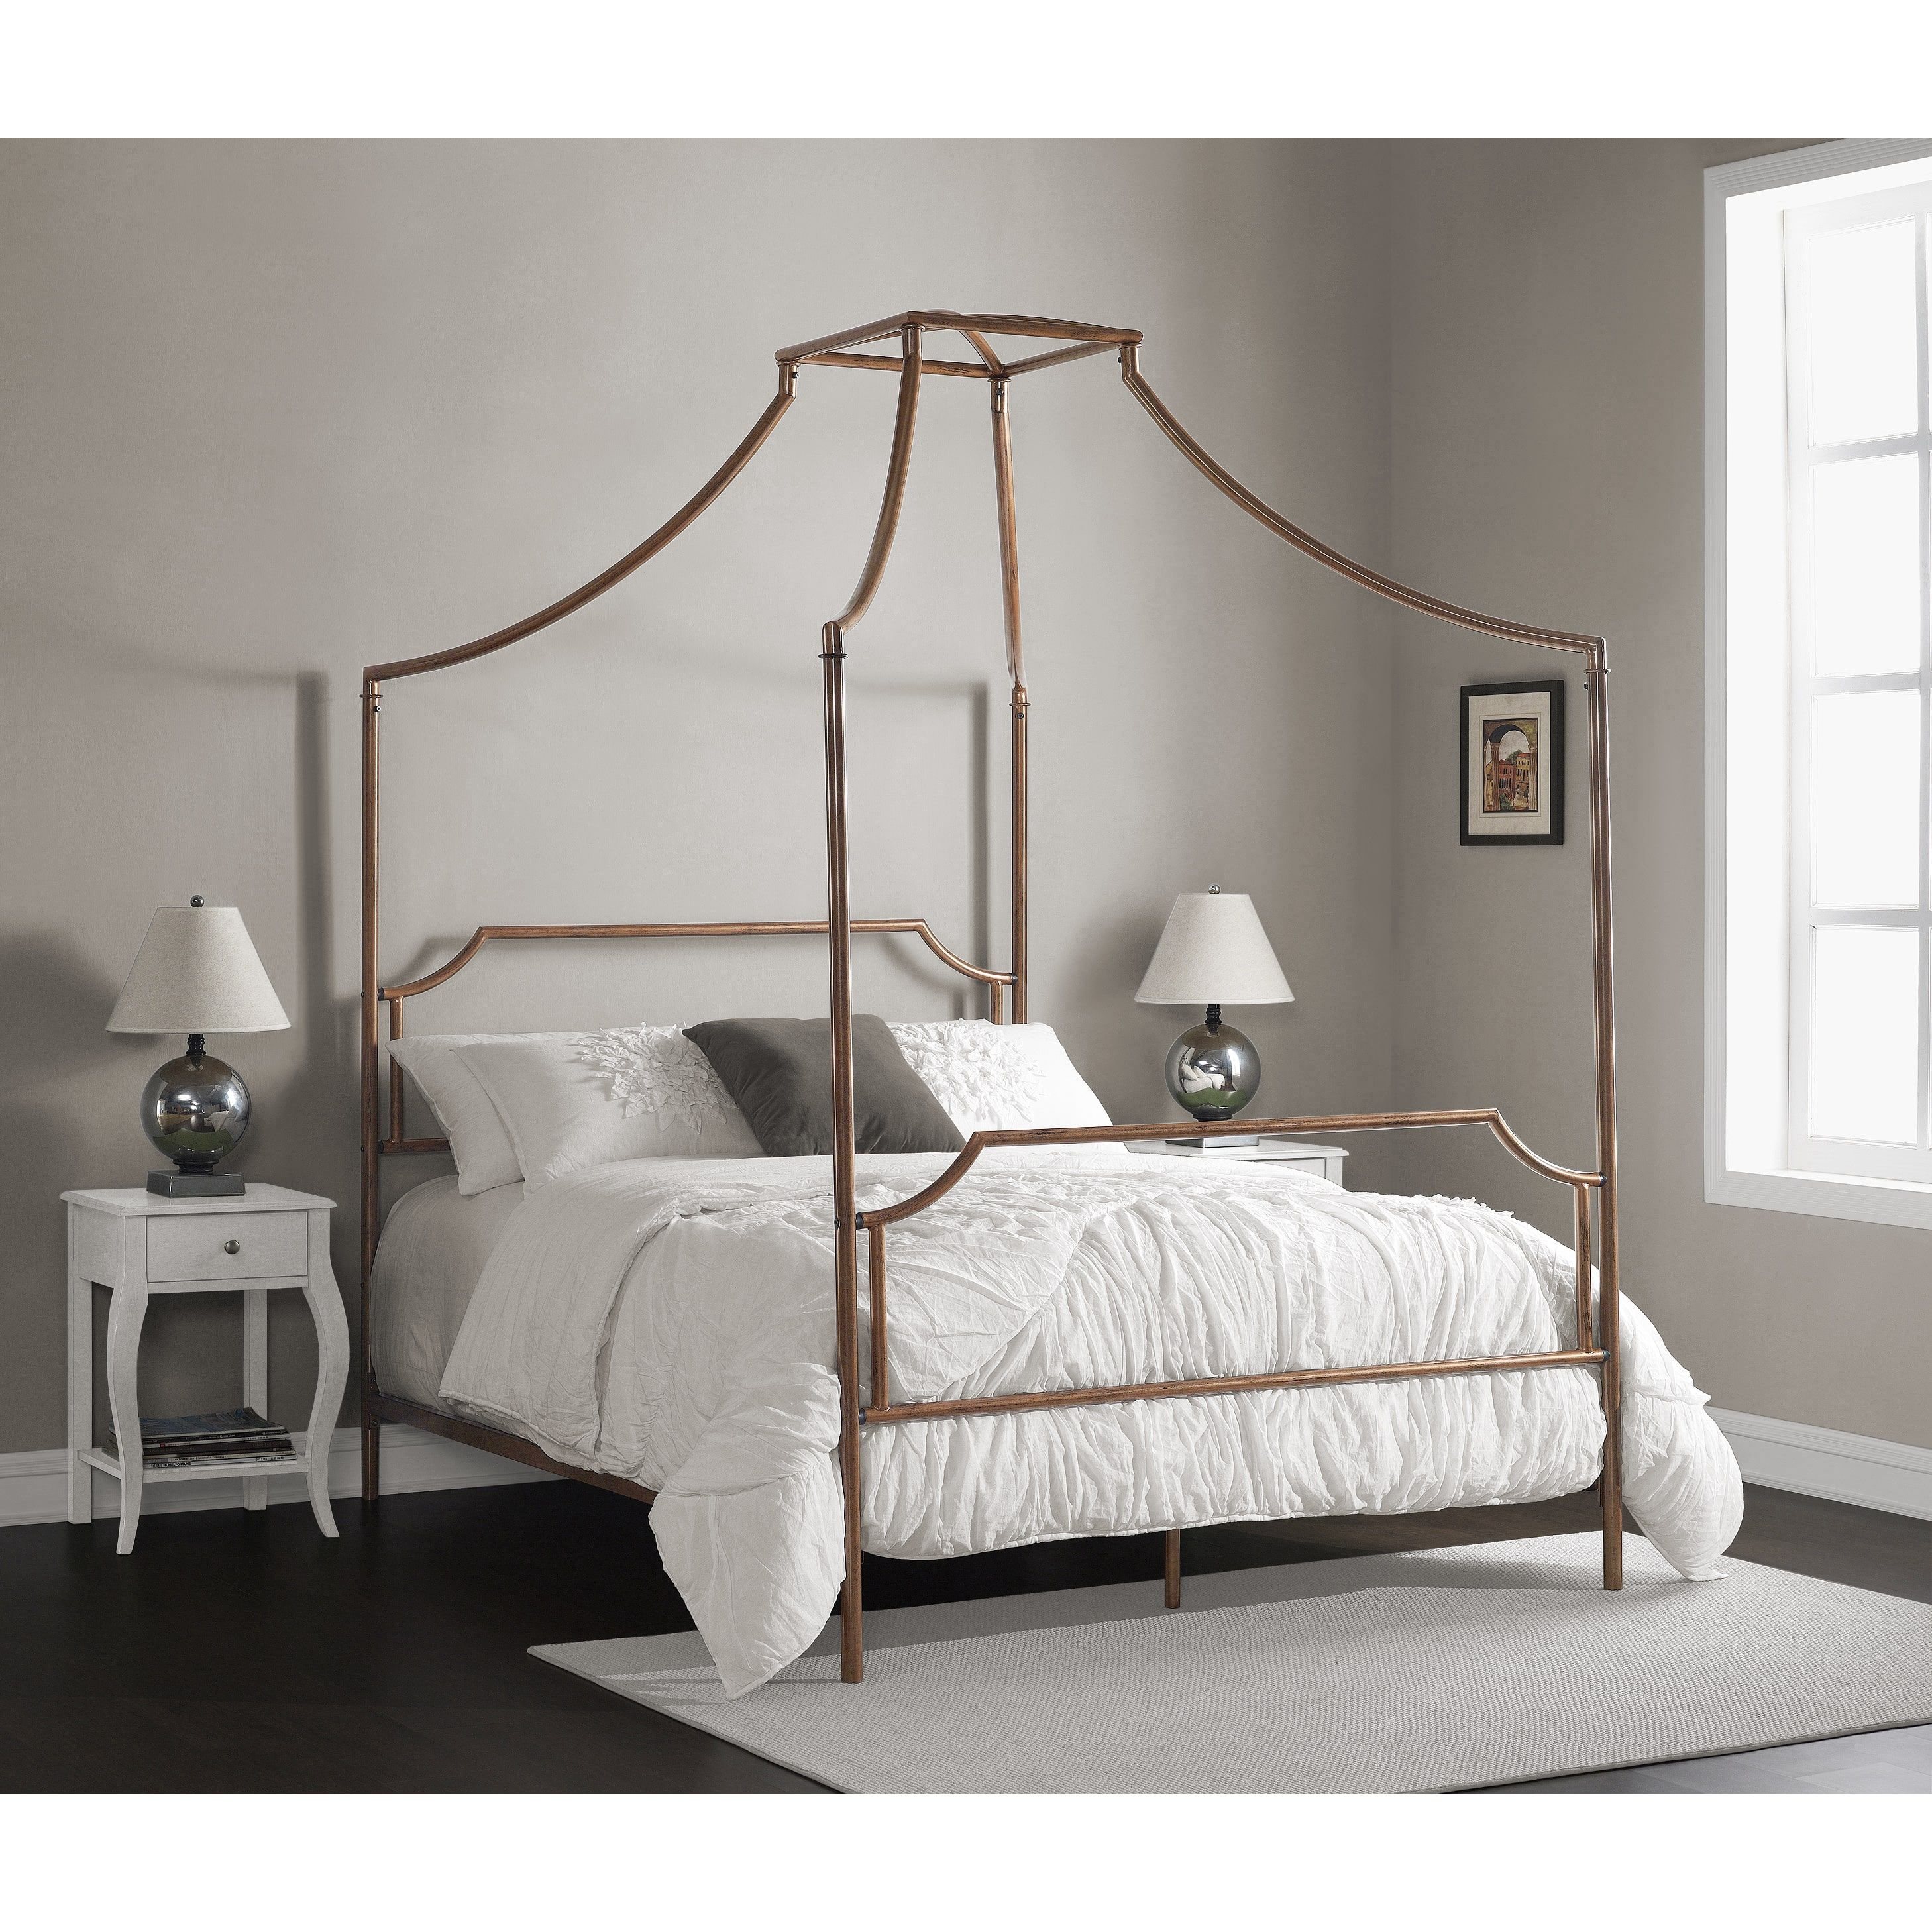 $299 Queen Size Canopy Bed Home Goods : Free Shipping On